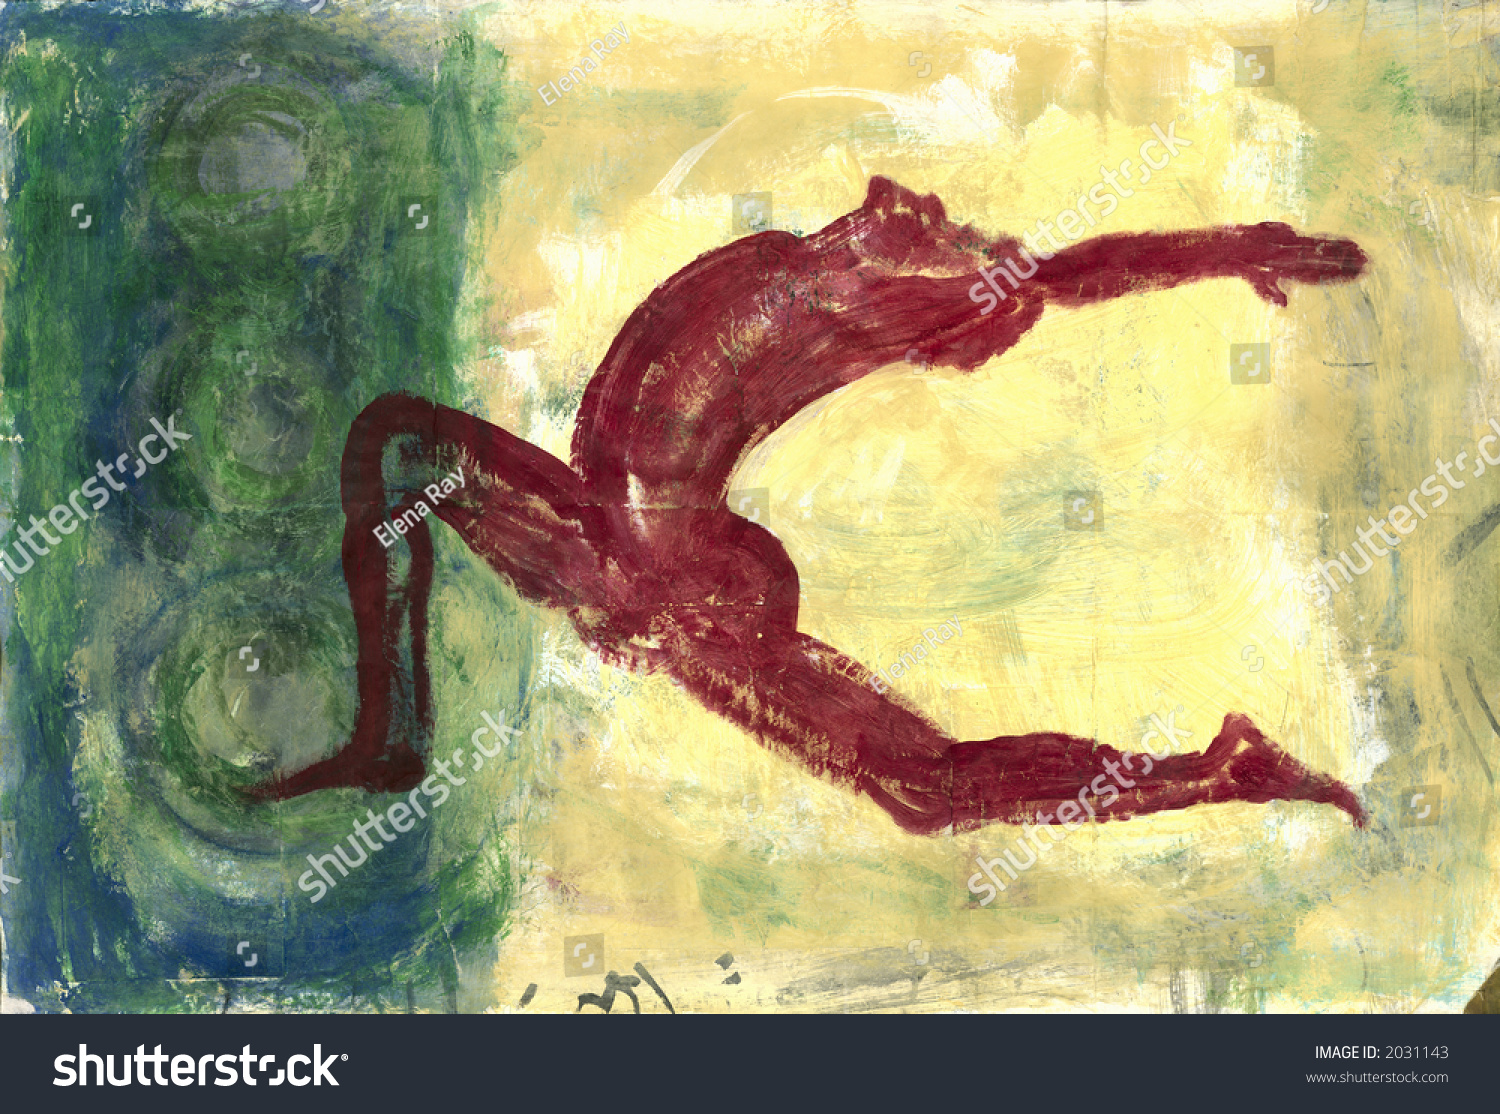 Abstract painting of an iconic red man doing a yoga backbend